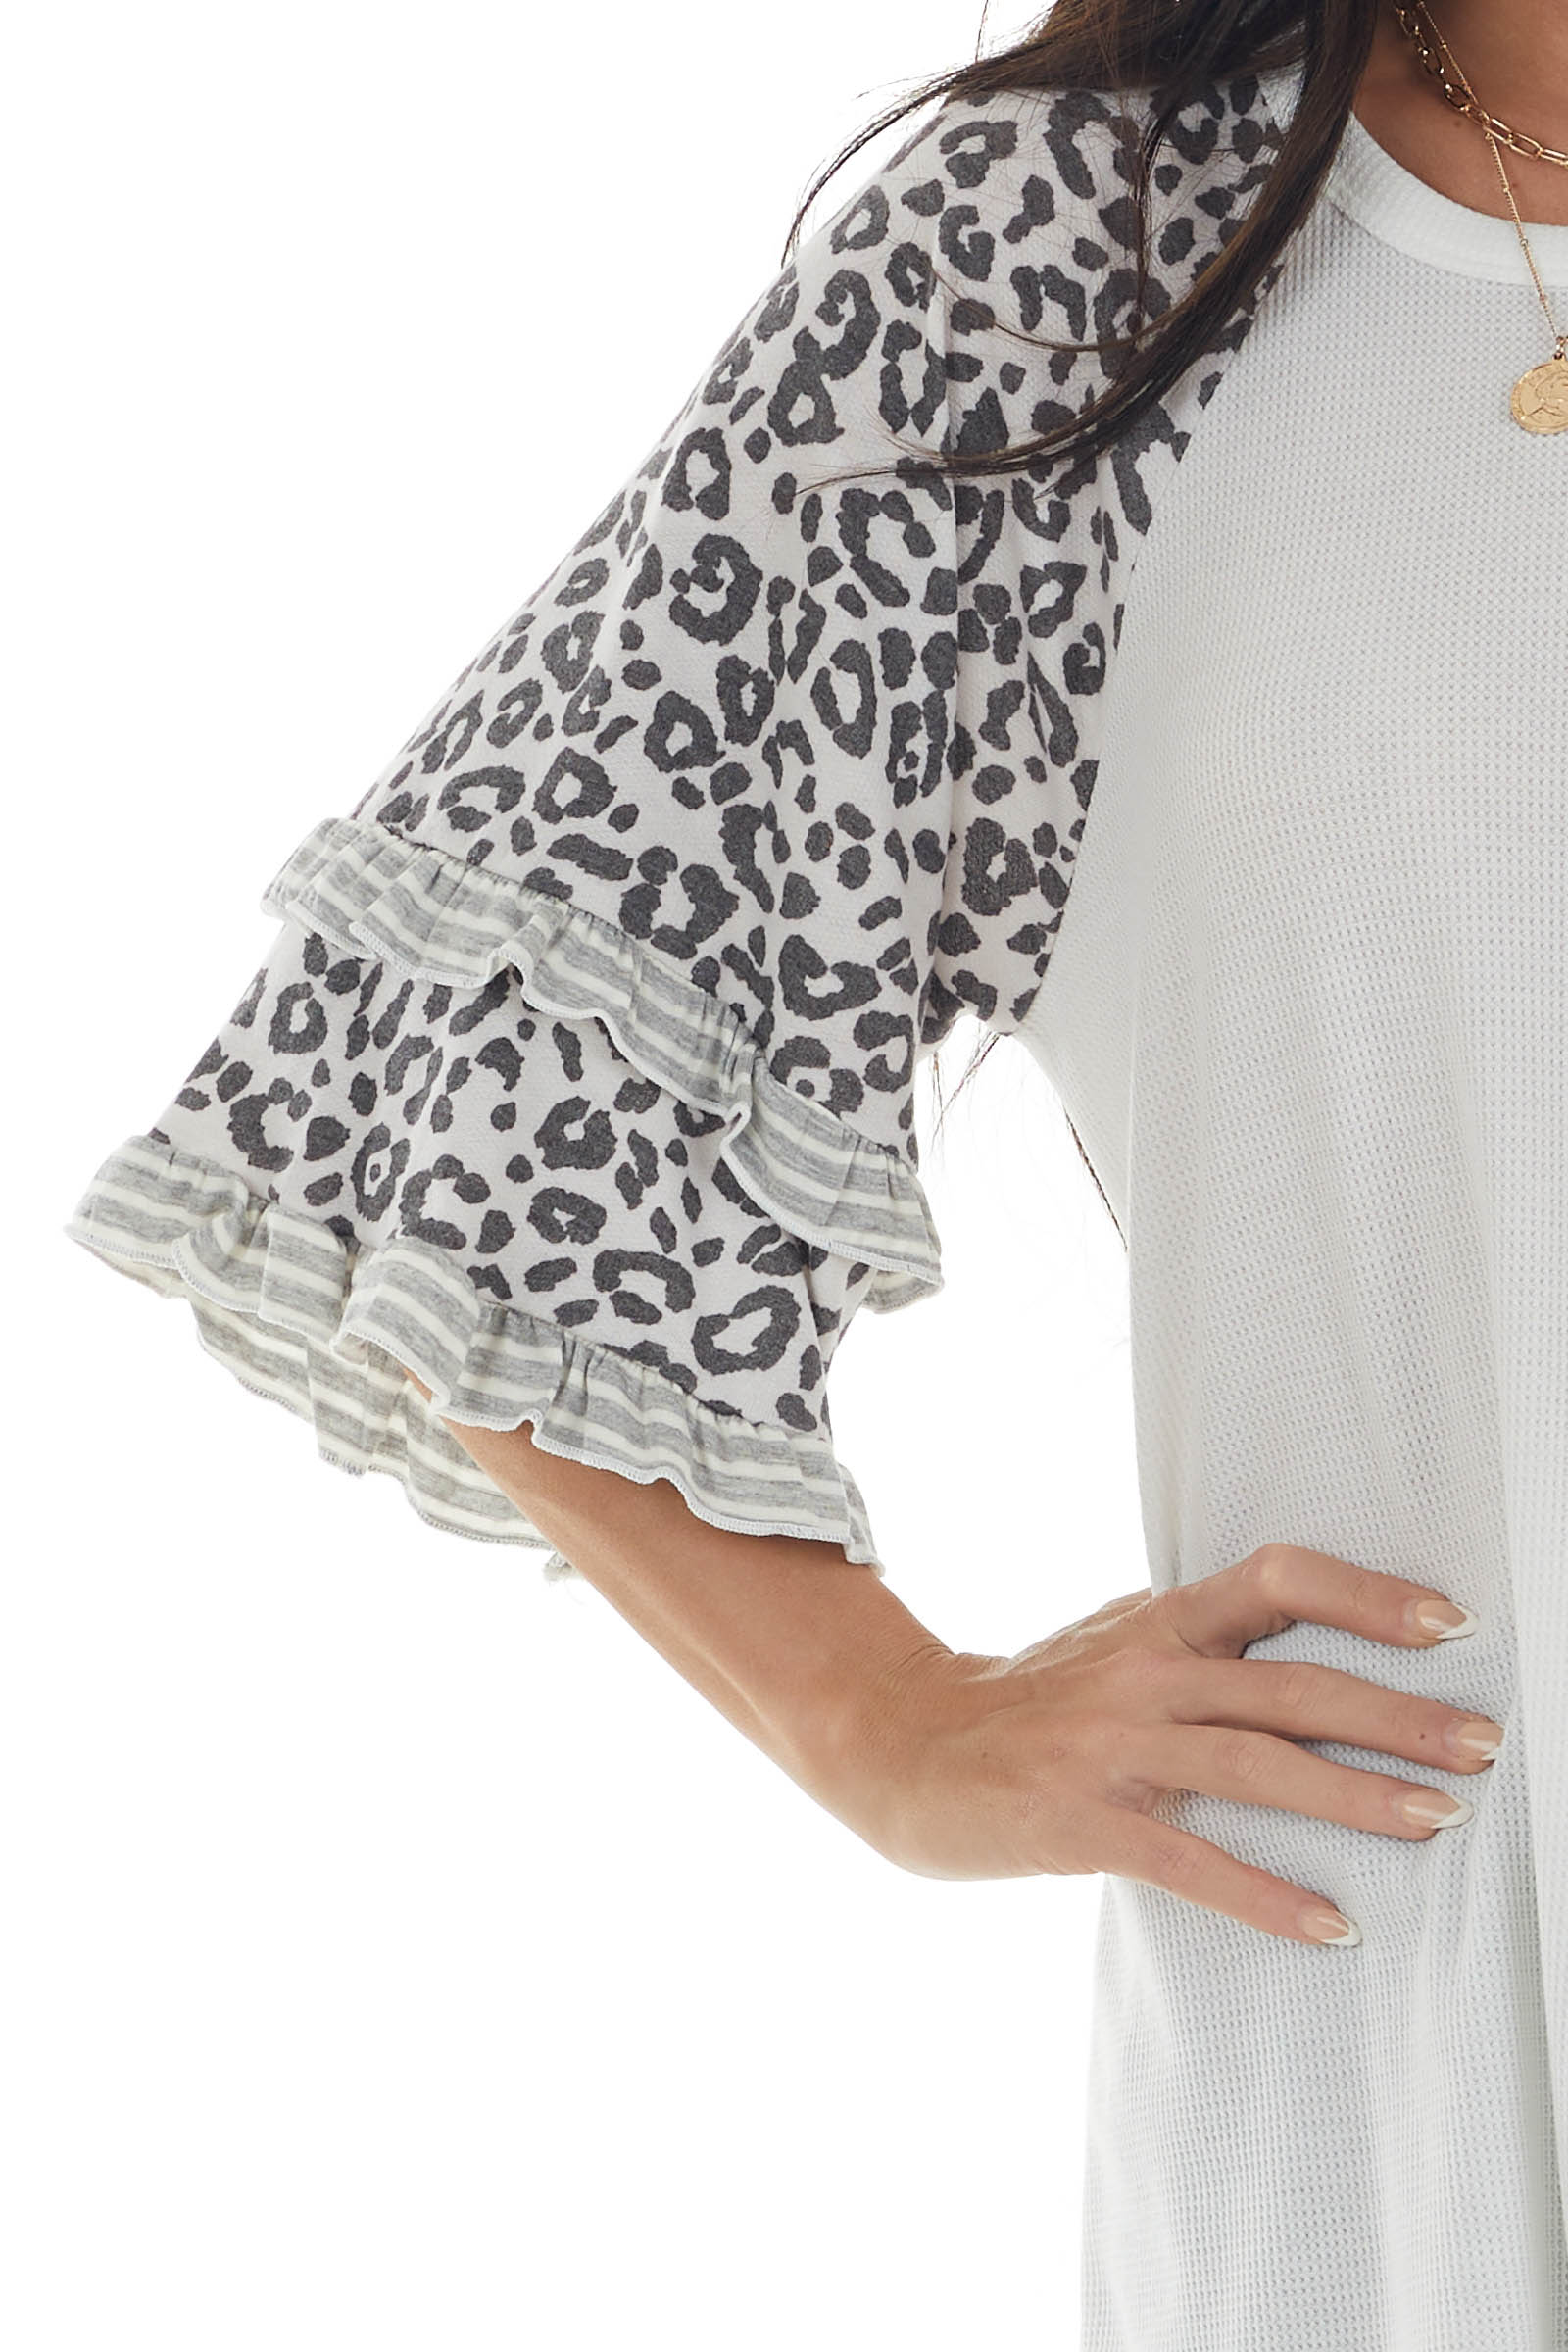 Off White Waffle Knit Tiered Leopard Sleeve